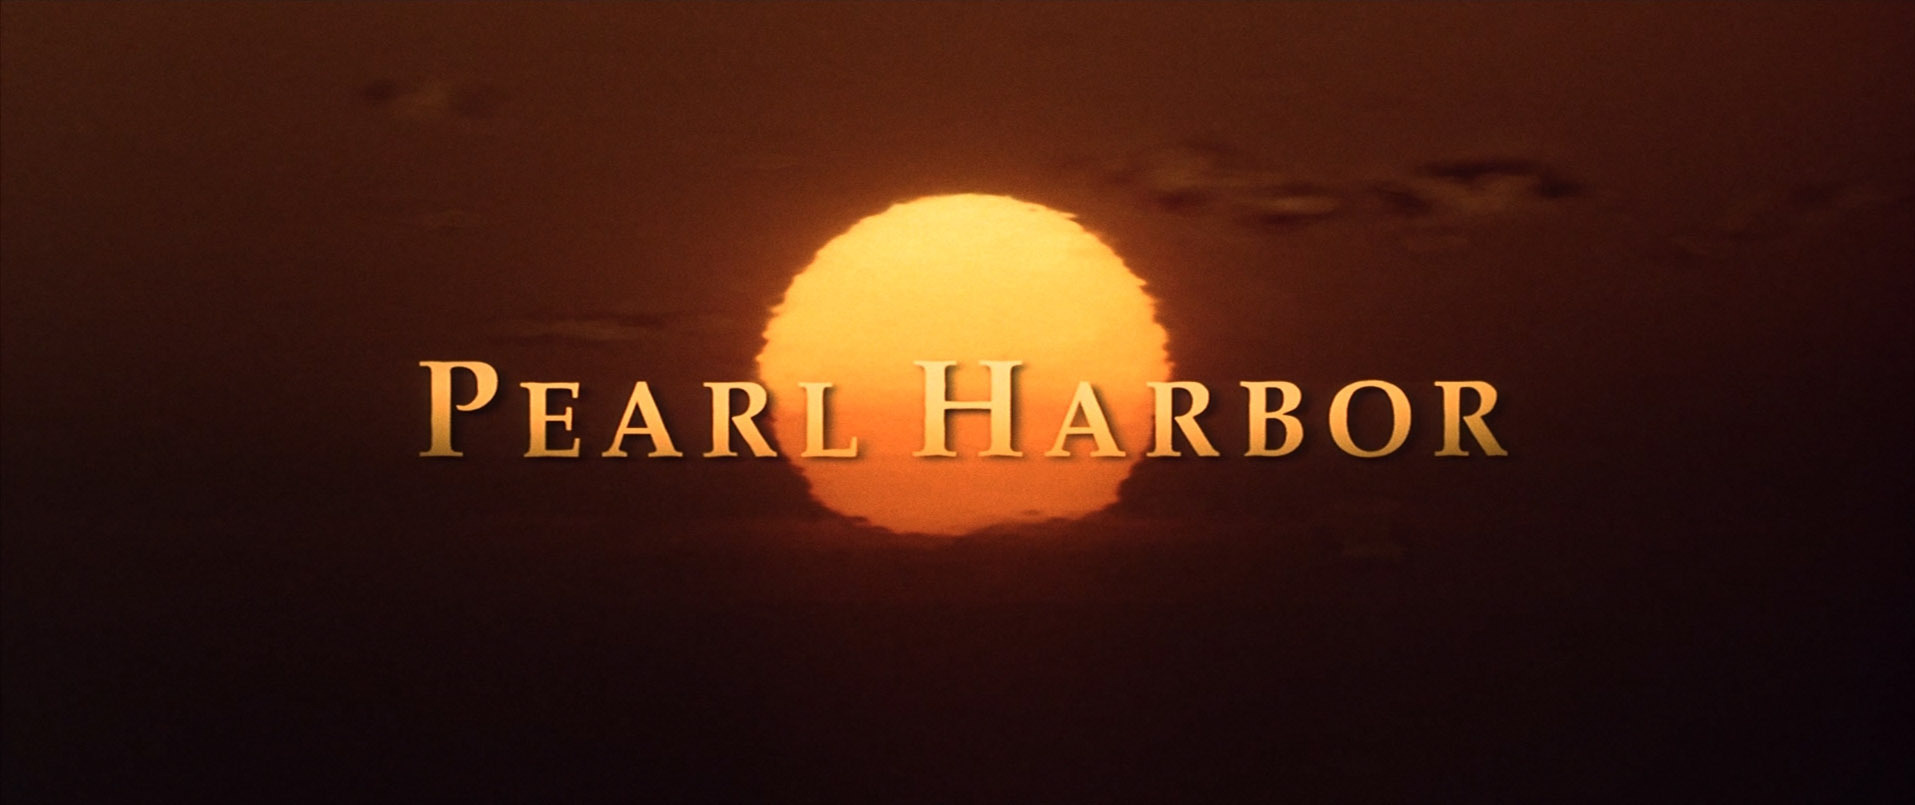 Pearl Harbor movie title screen